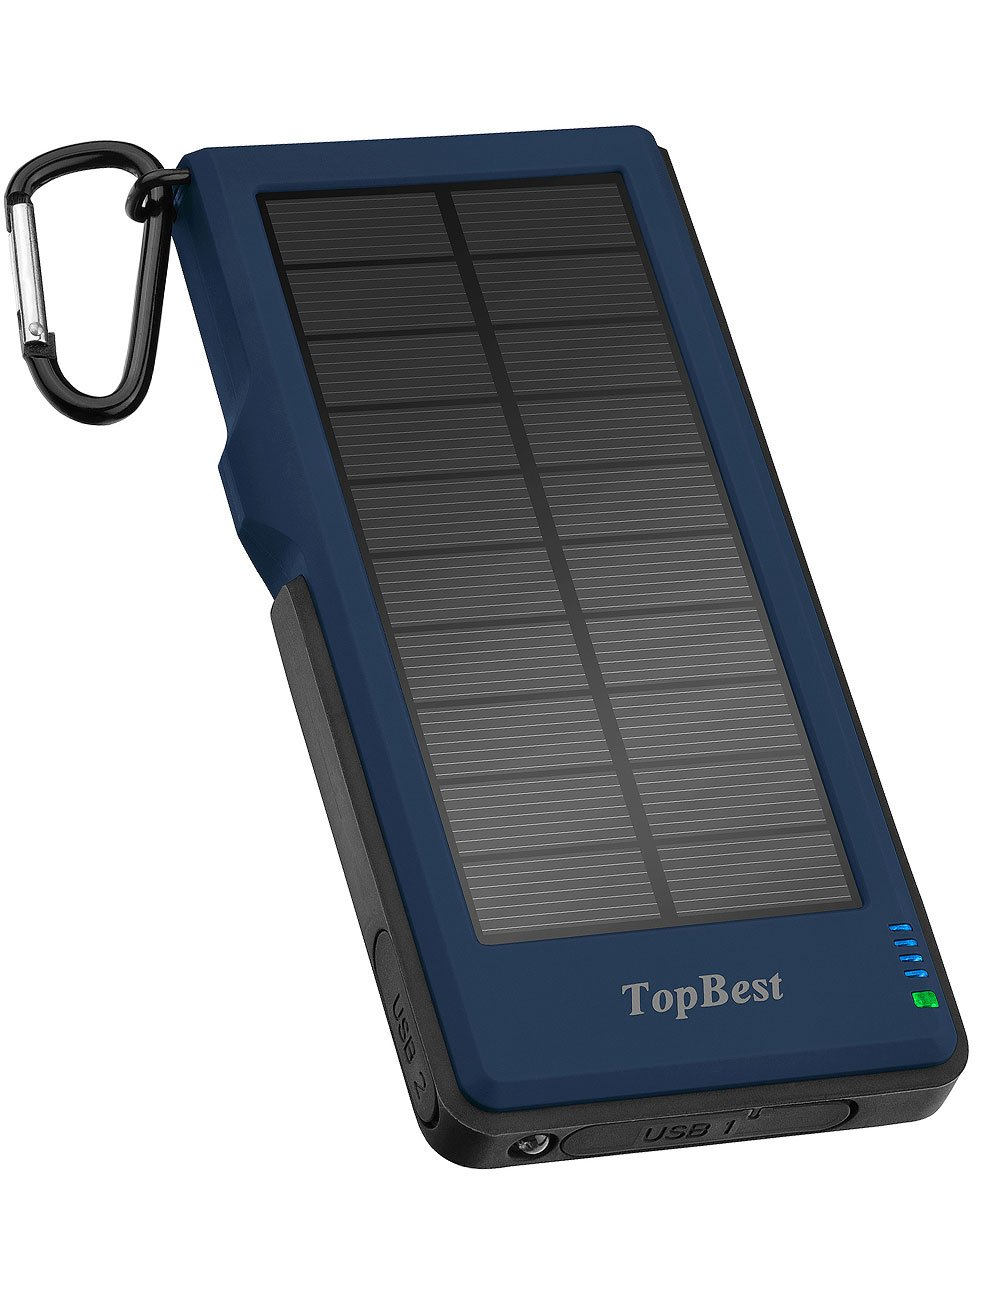 Solar Charger, 12000mAh Portable Phone Charger with Quick Charge 3.0, TopBest Solar Power Bank with 2 Fast Charging USB Port and LED Flashlight for Emergency, Camping and All Smartphone Tablet (Blue)